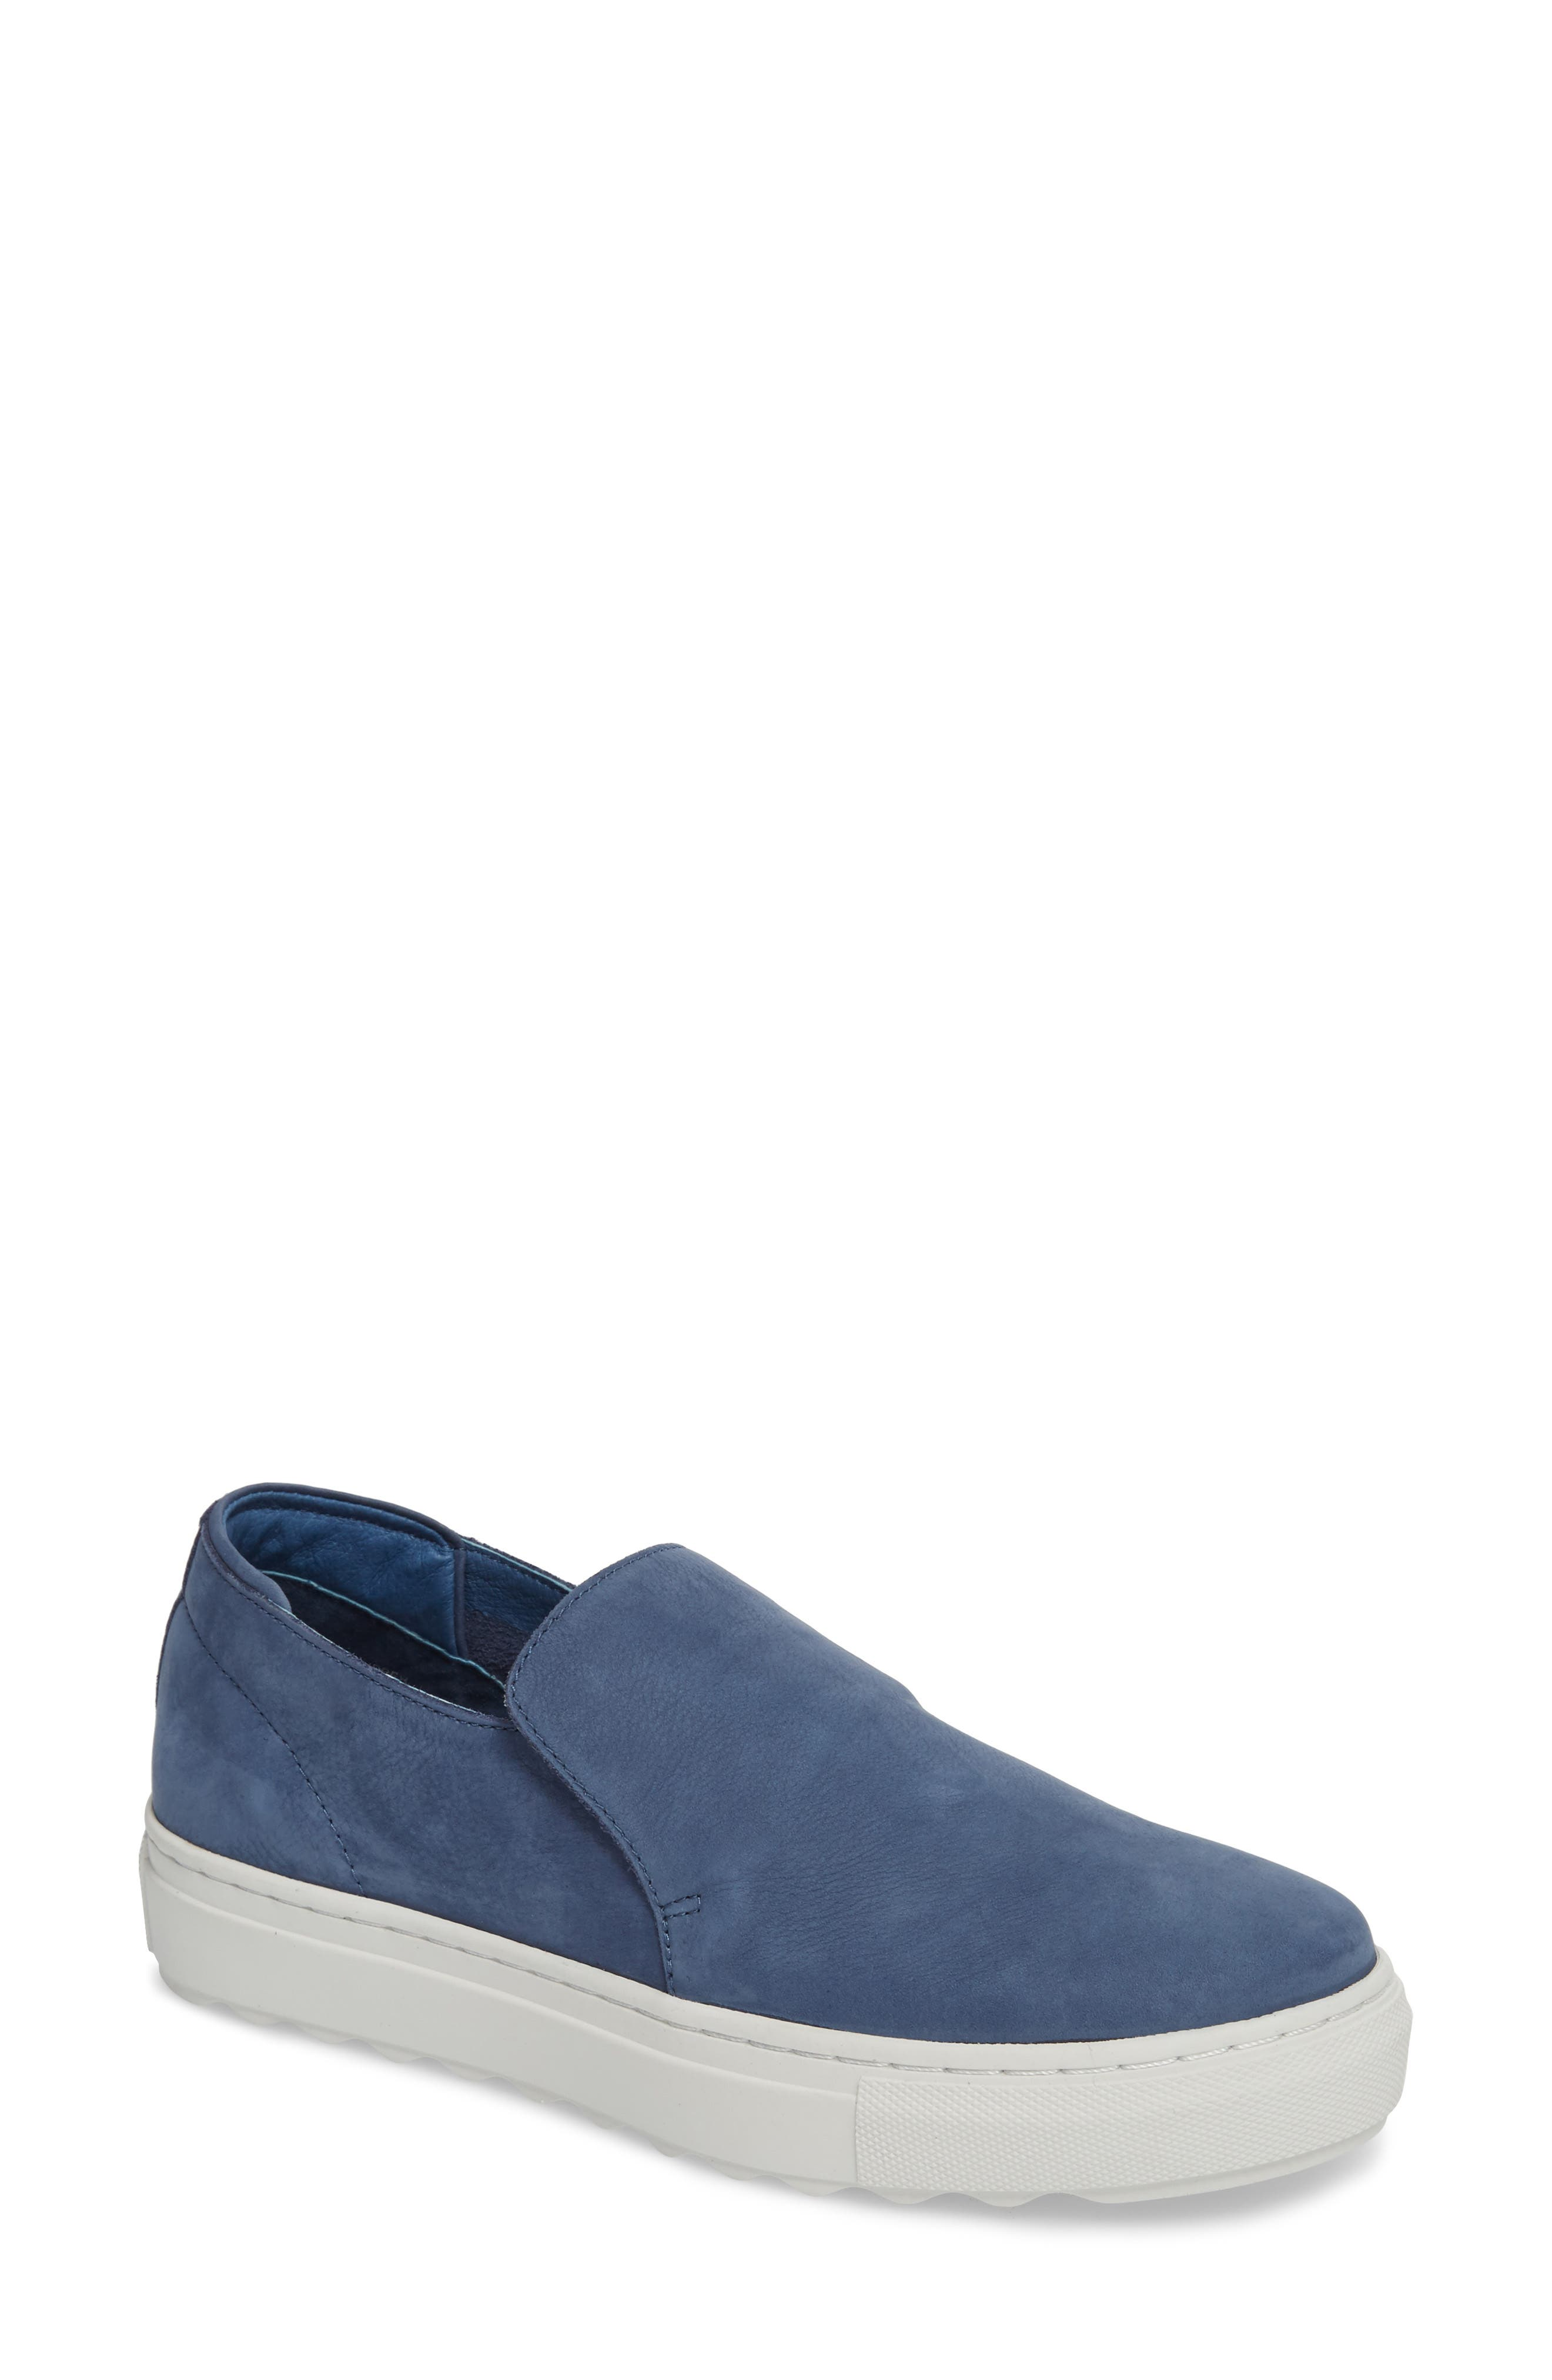 Perrie Platform Slip-On,                             Main thumbnail 1, color,                             Denim Suede